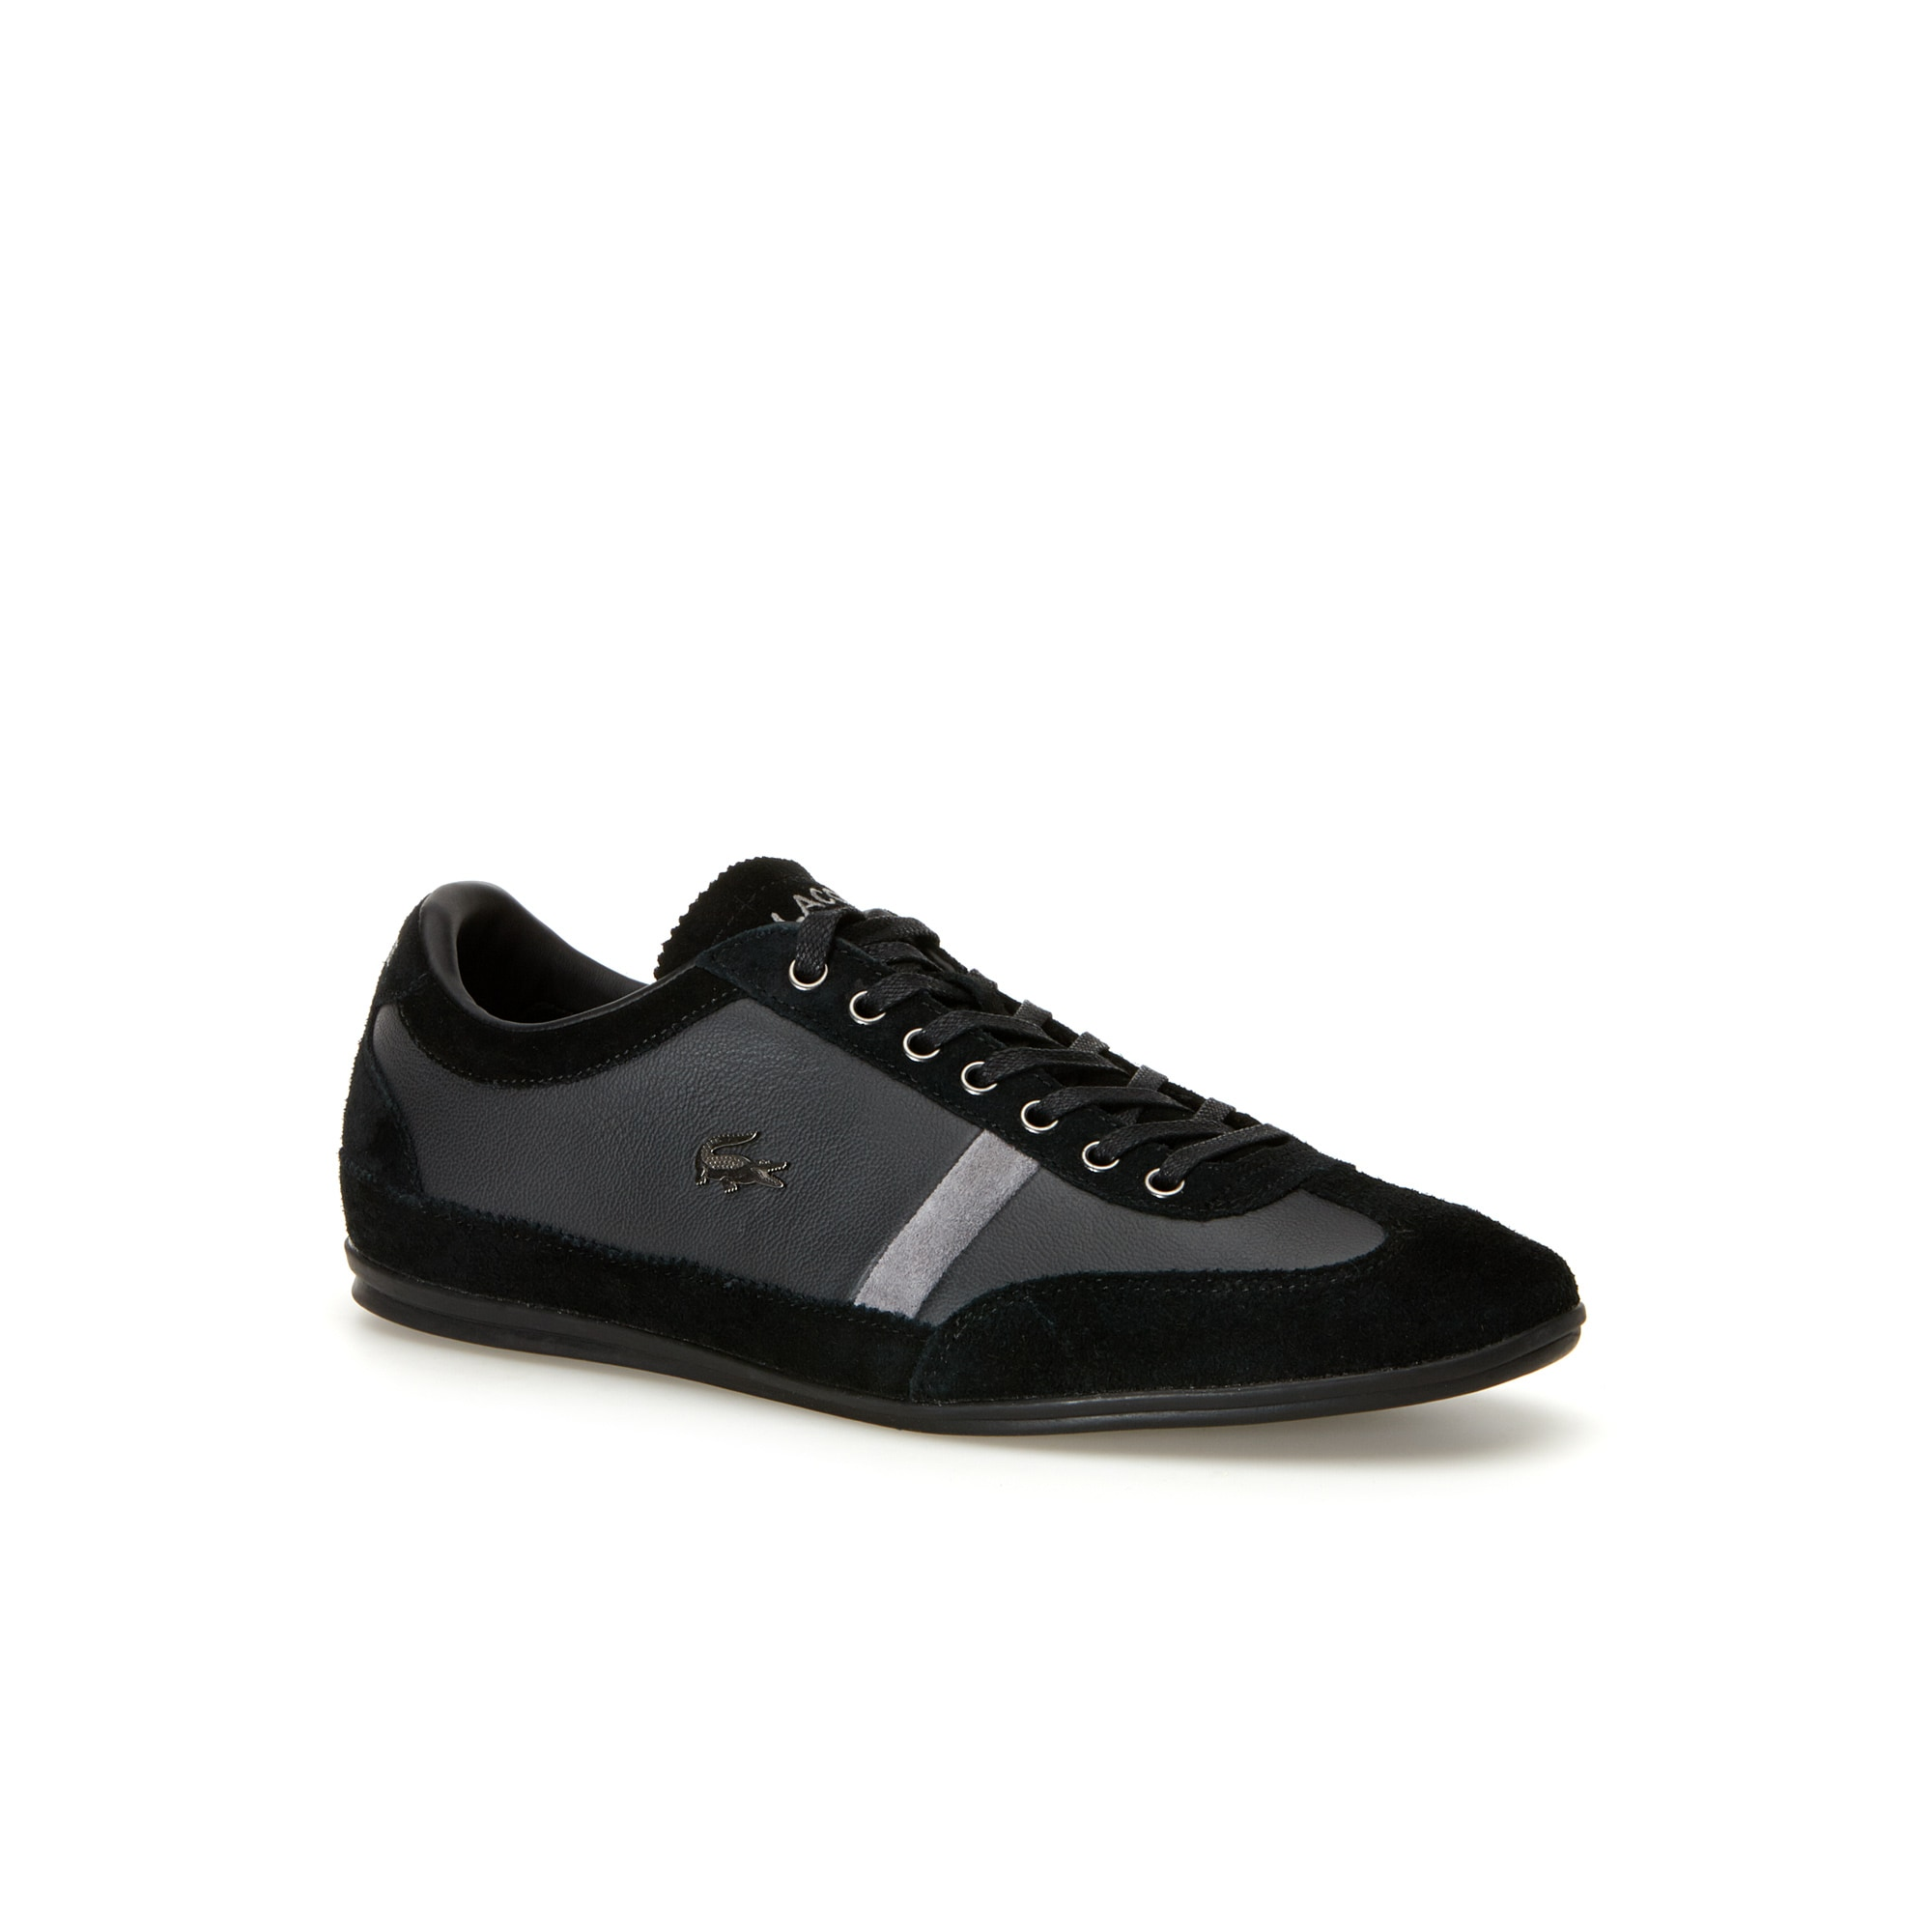 Men's Misano Low-Rise Leather and Suedette Sneakers